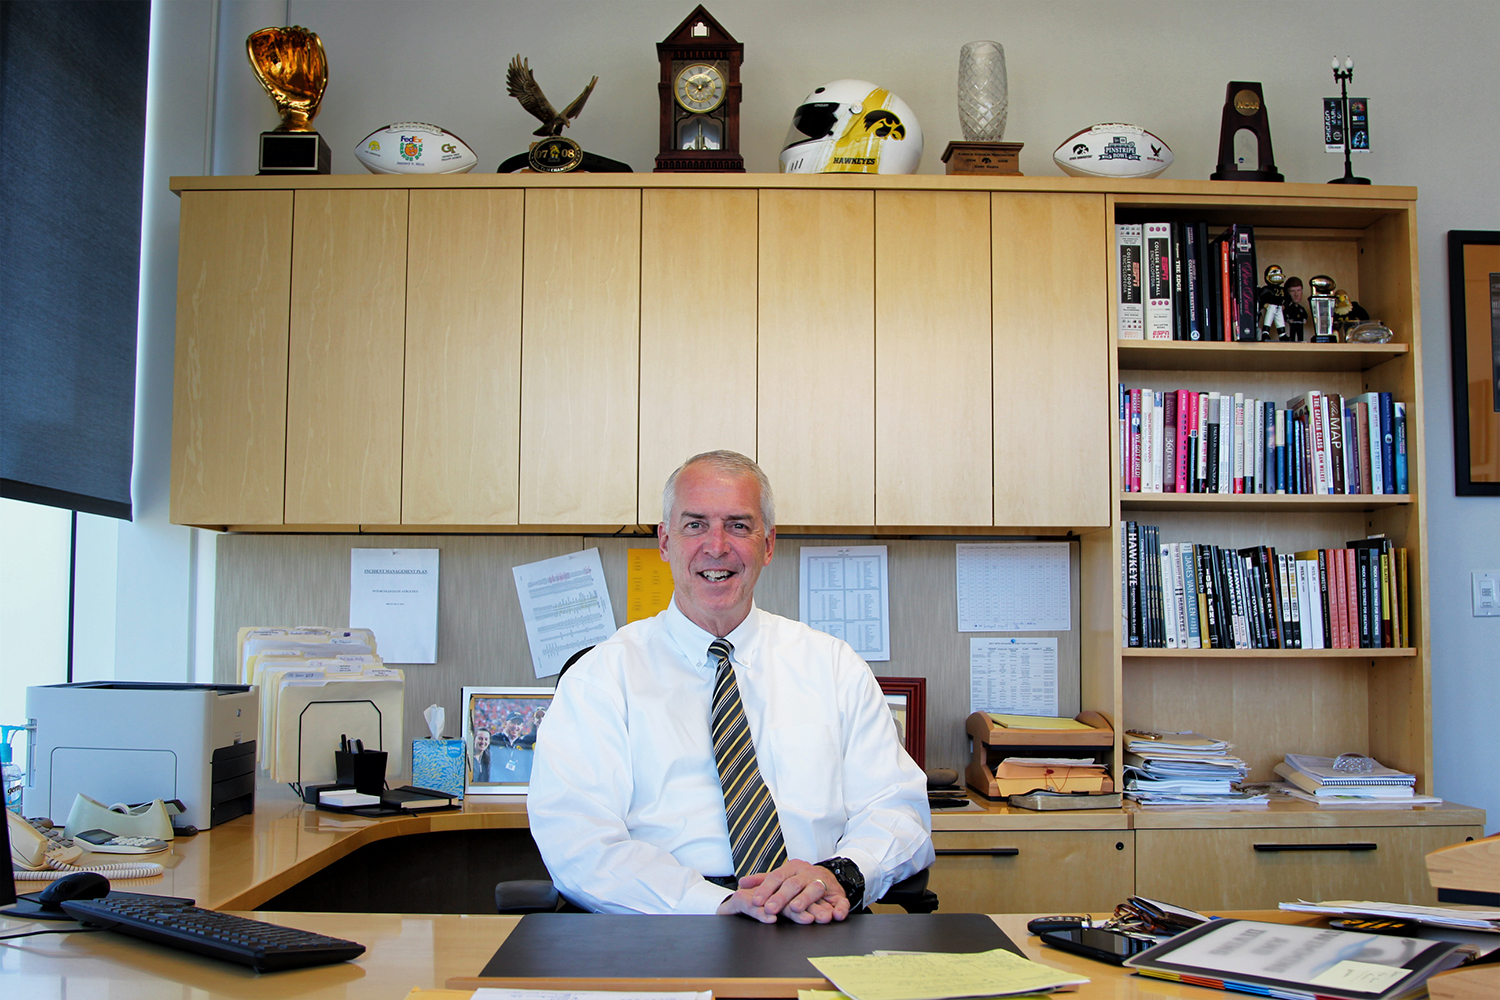 Iowa Athletic Director Gary Barta sits at his desk on Oct. 17.